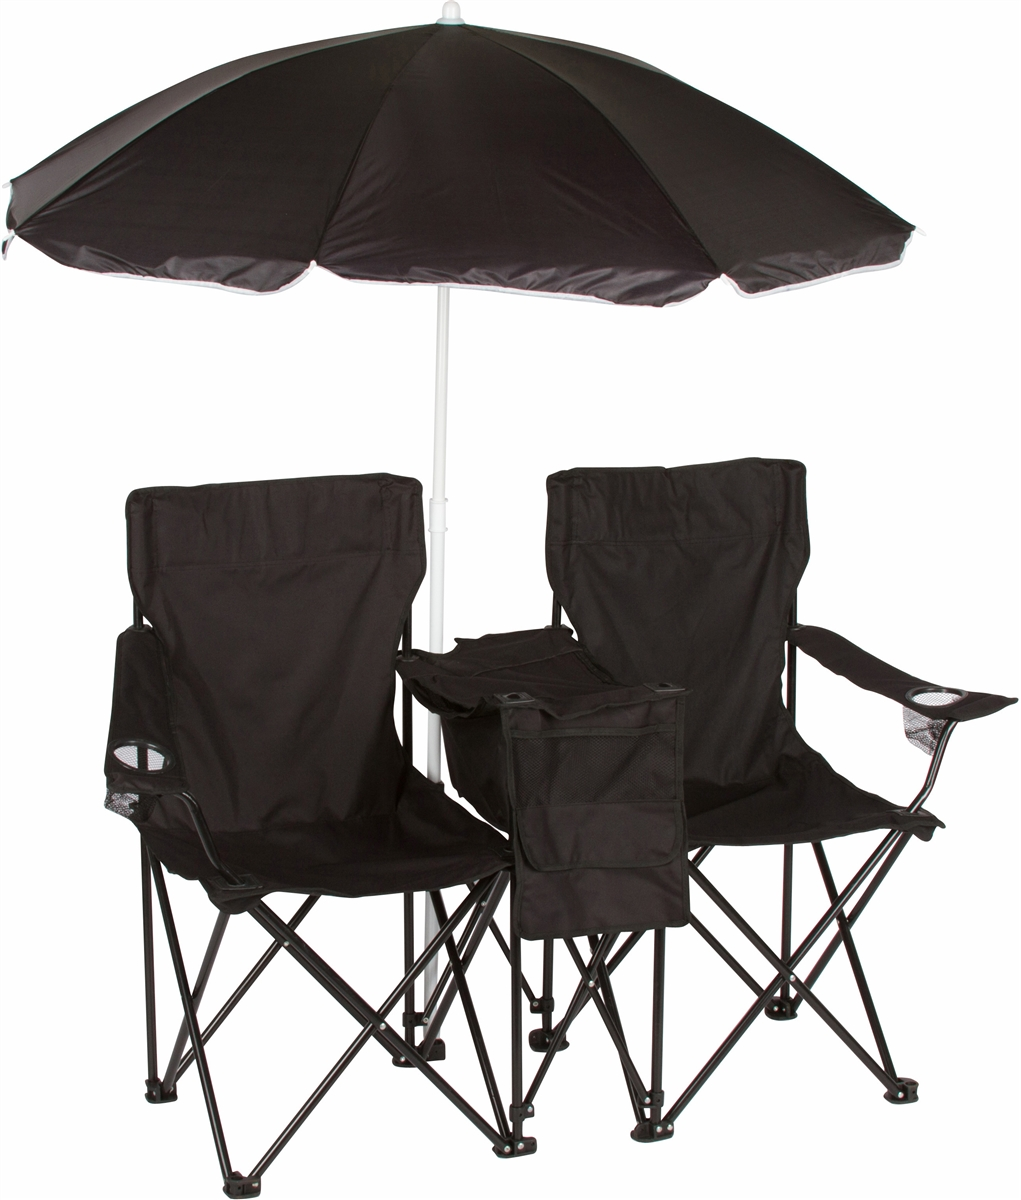 Double Folding Camp And Beach Chair With Removable Umbrella And Cooler By Trademark Innovations Black